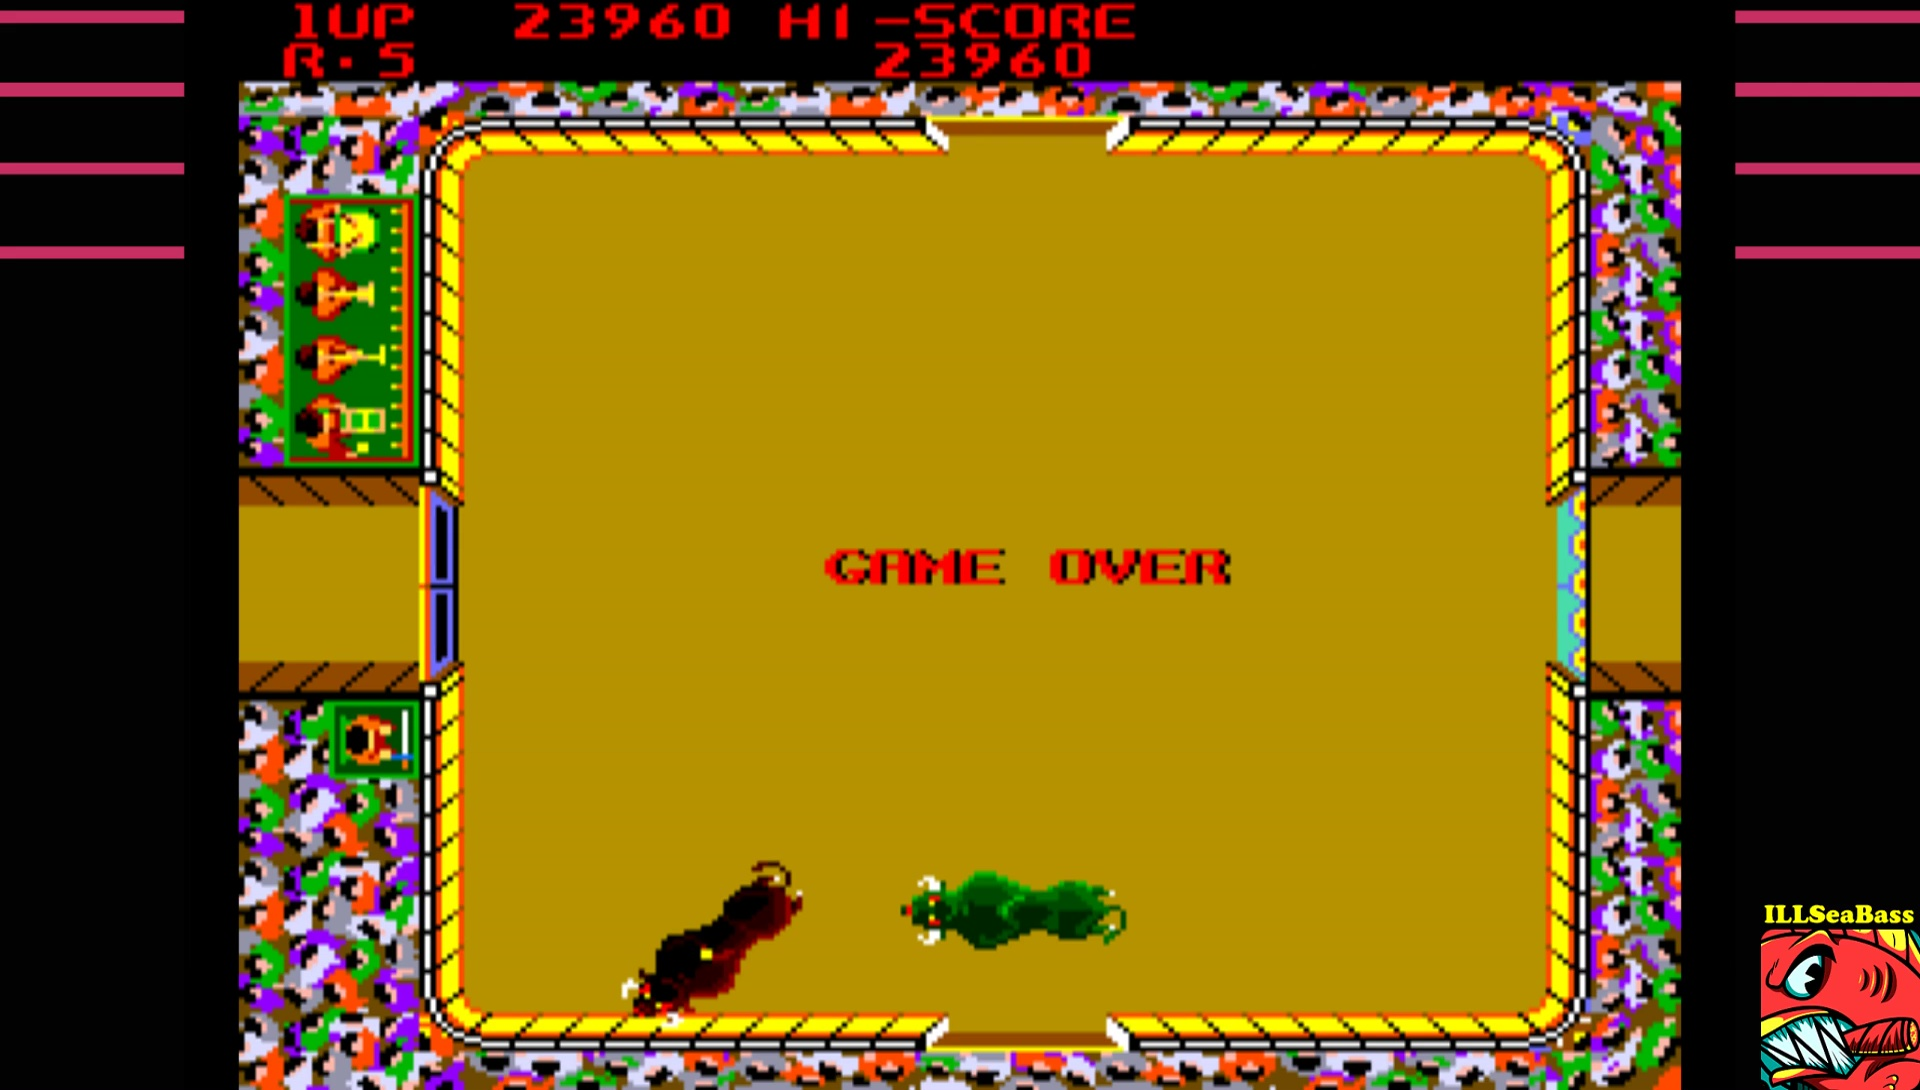 ILLSeaBass: Bull Fight [bullfgt] (Arcade Emulated / M.A.M.E.) 23,960 points on 2017-07-07 21:29:01